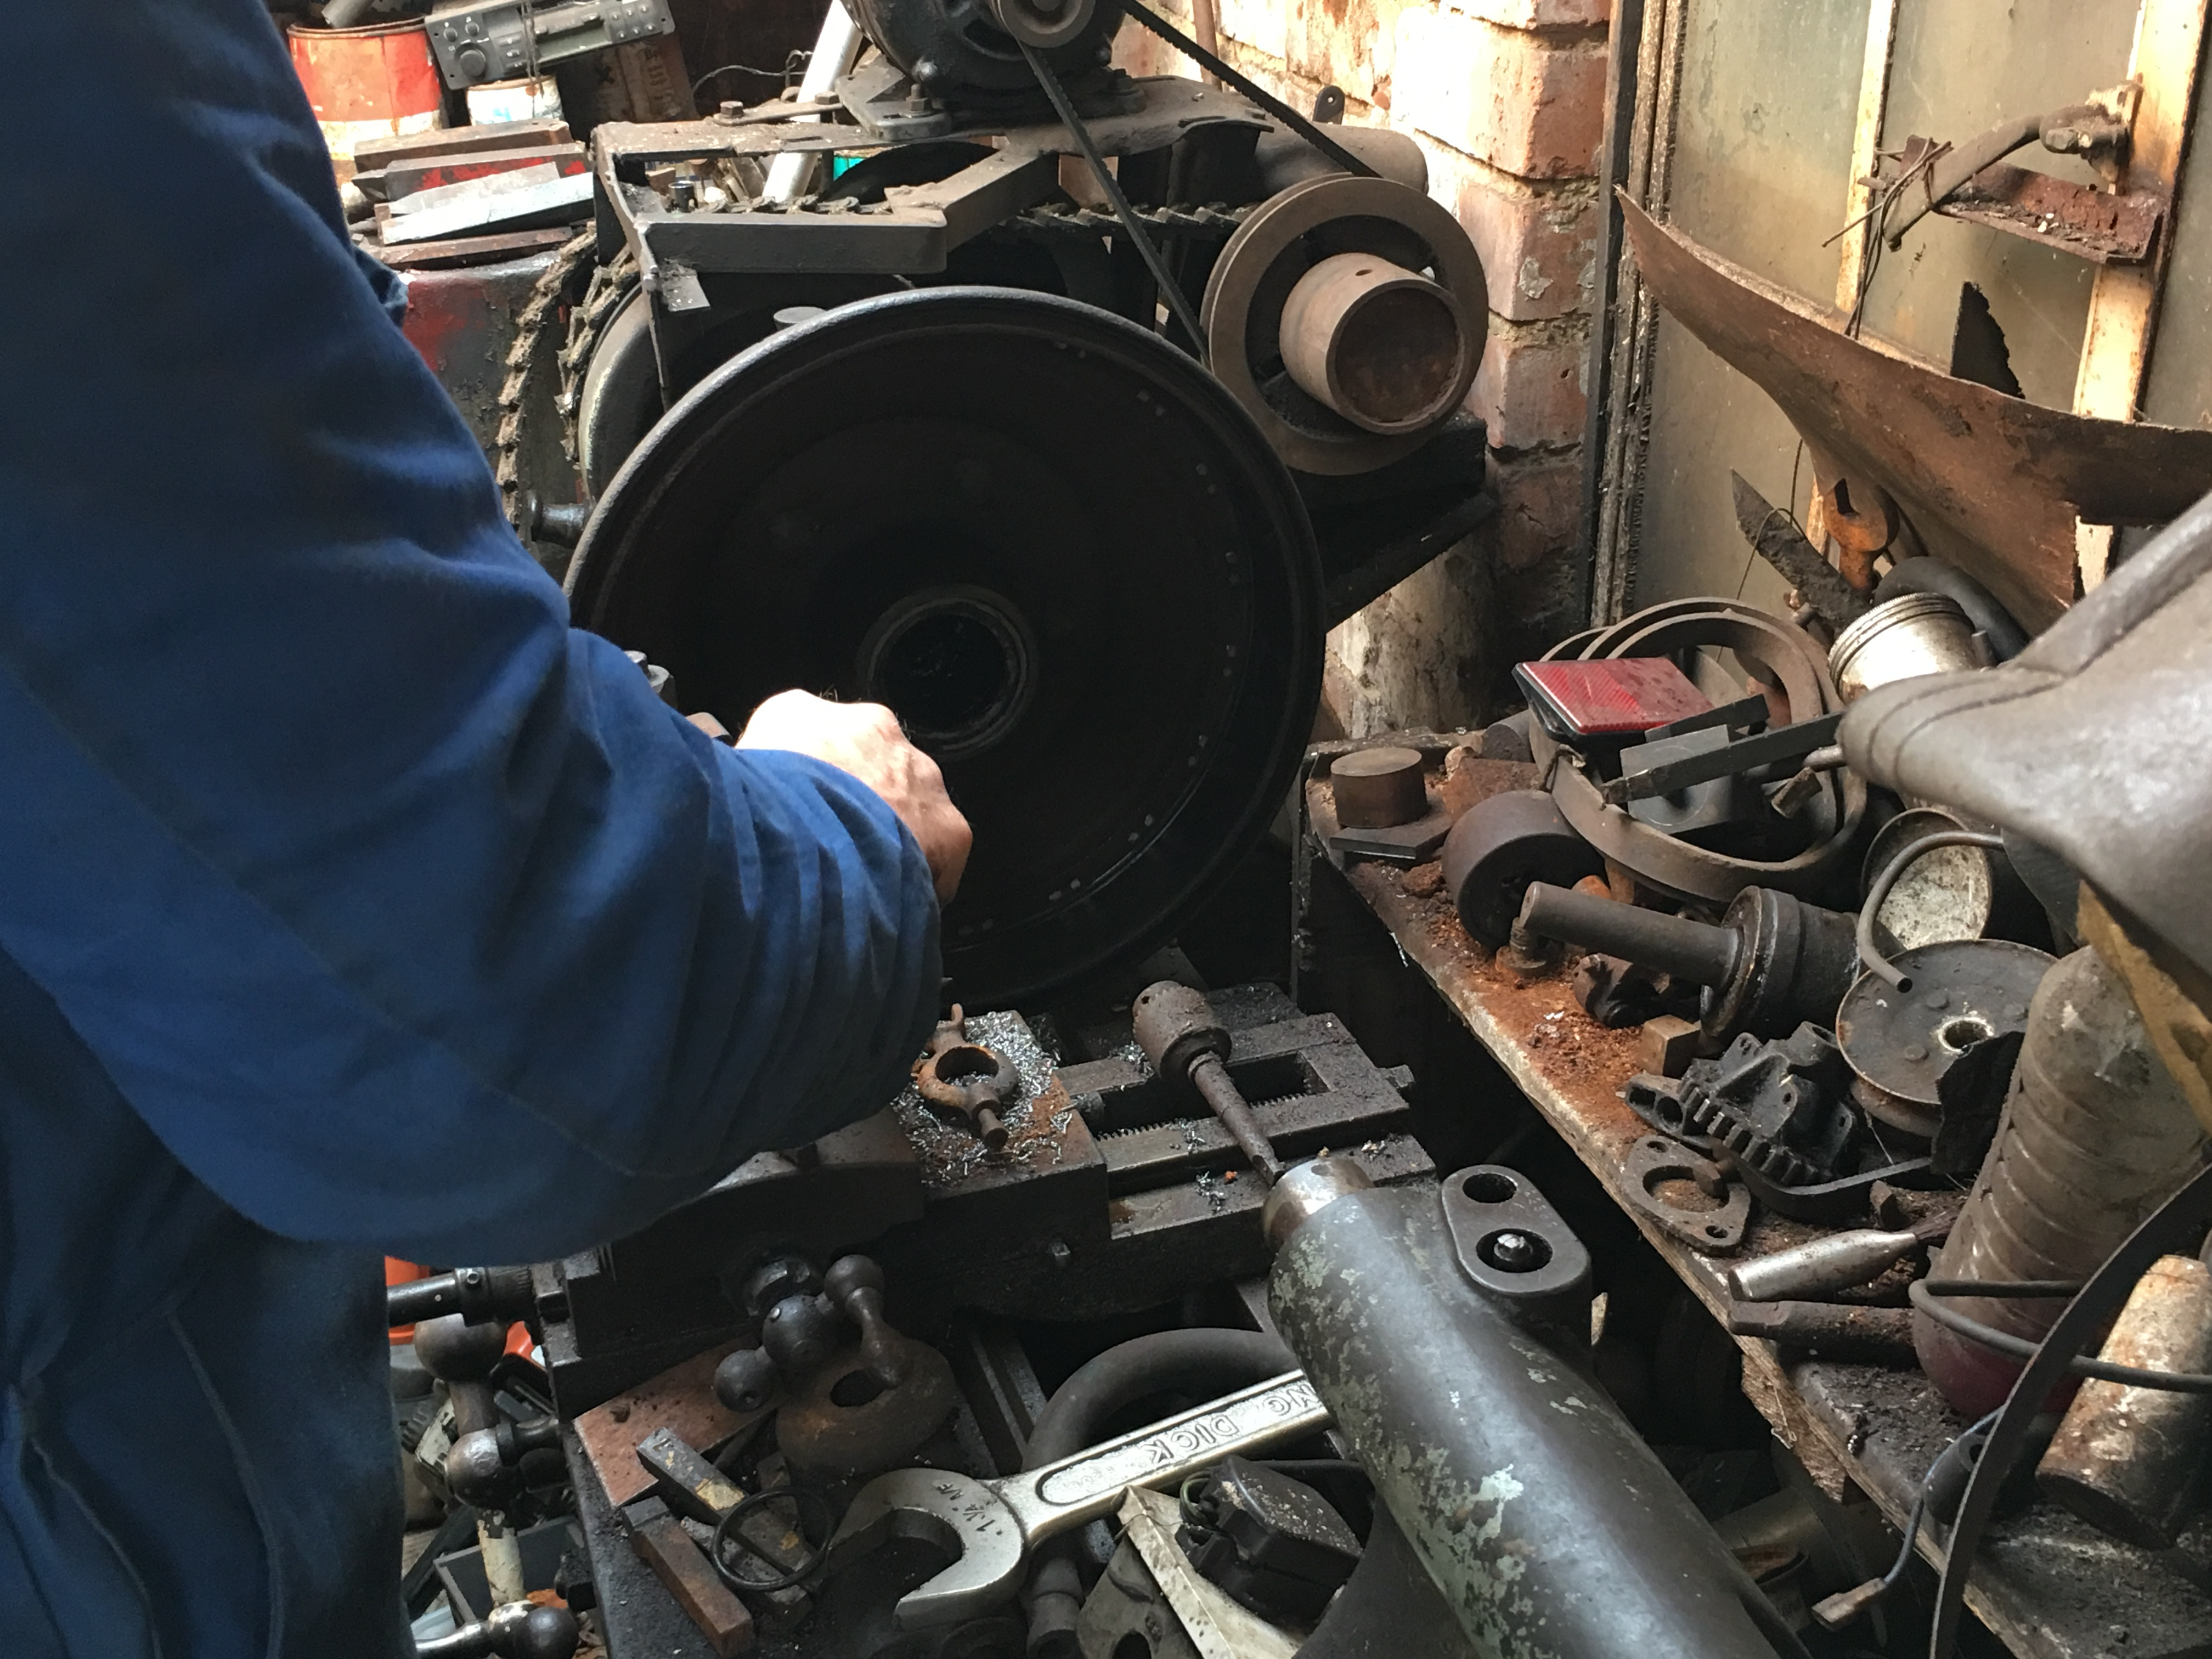 Removing material from the brake drum